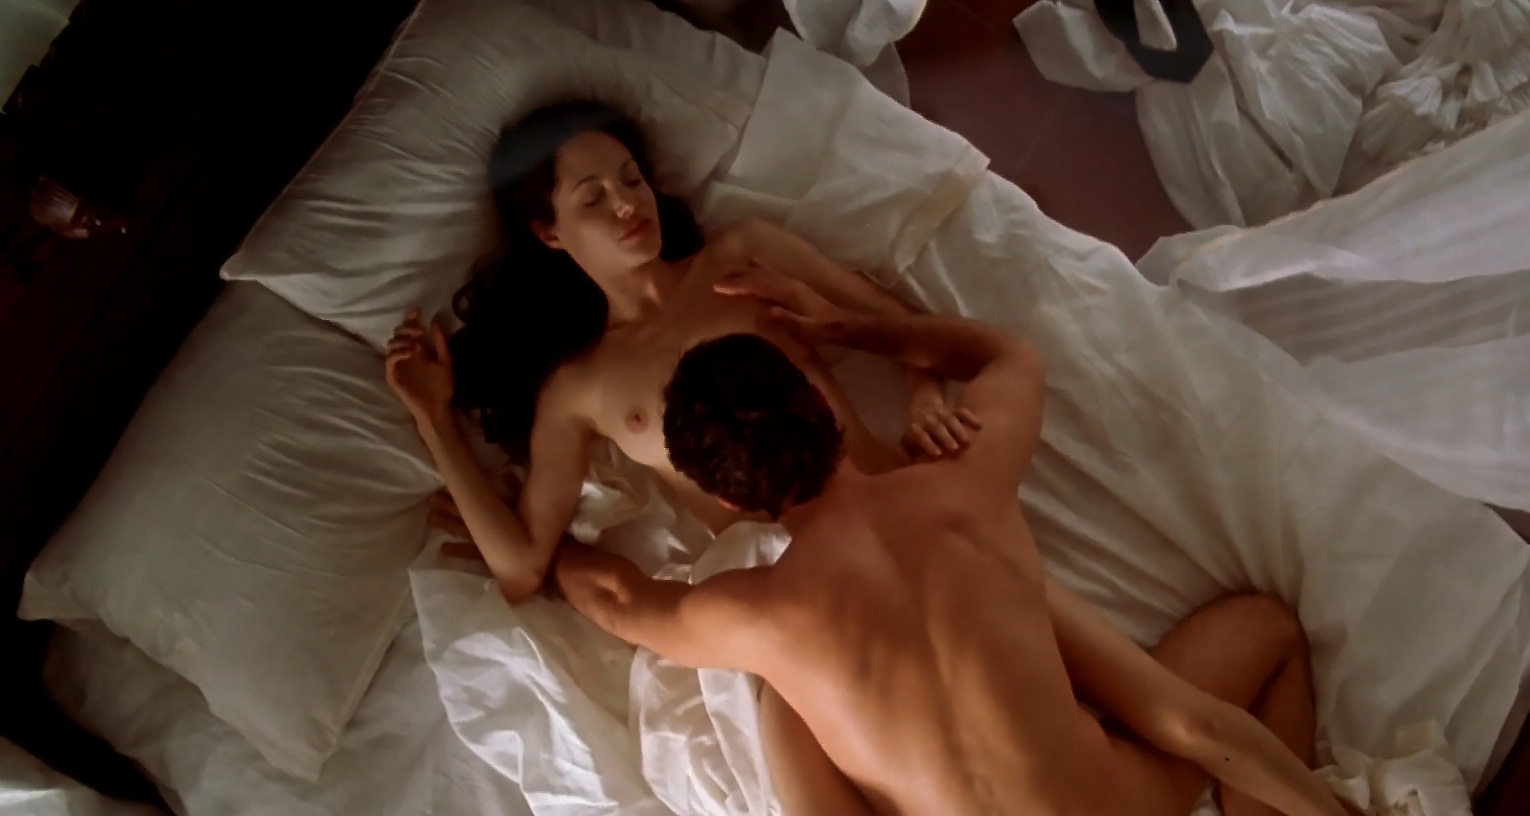 Angelina jolie naked with a man in a movie